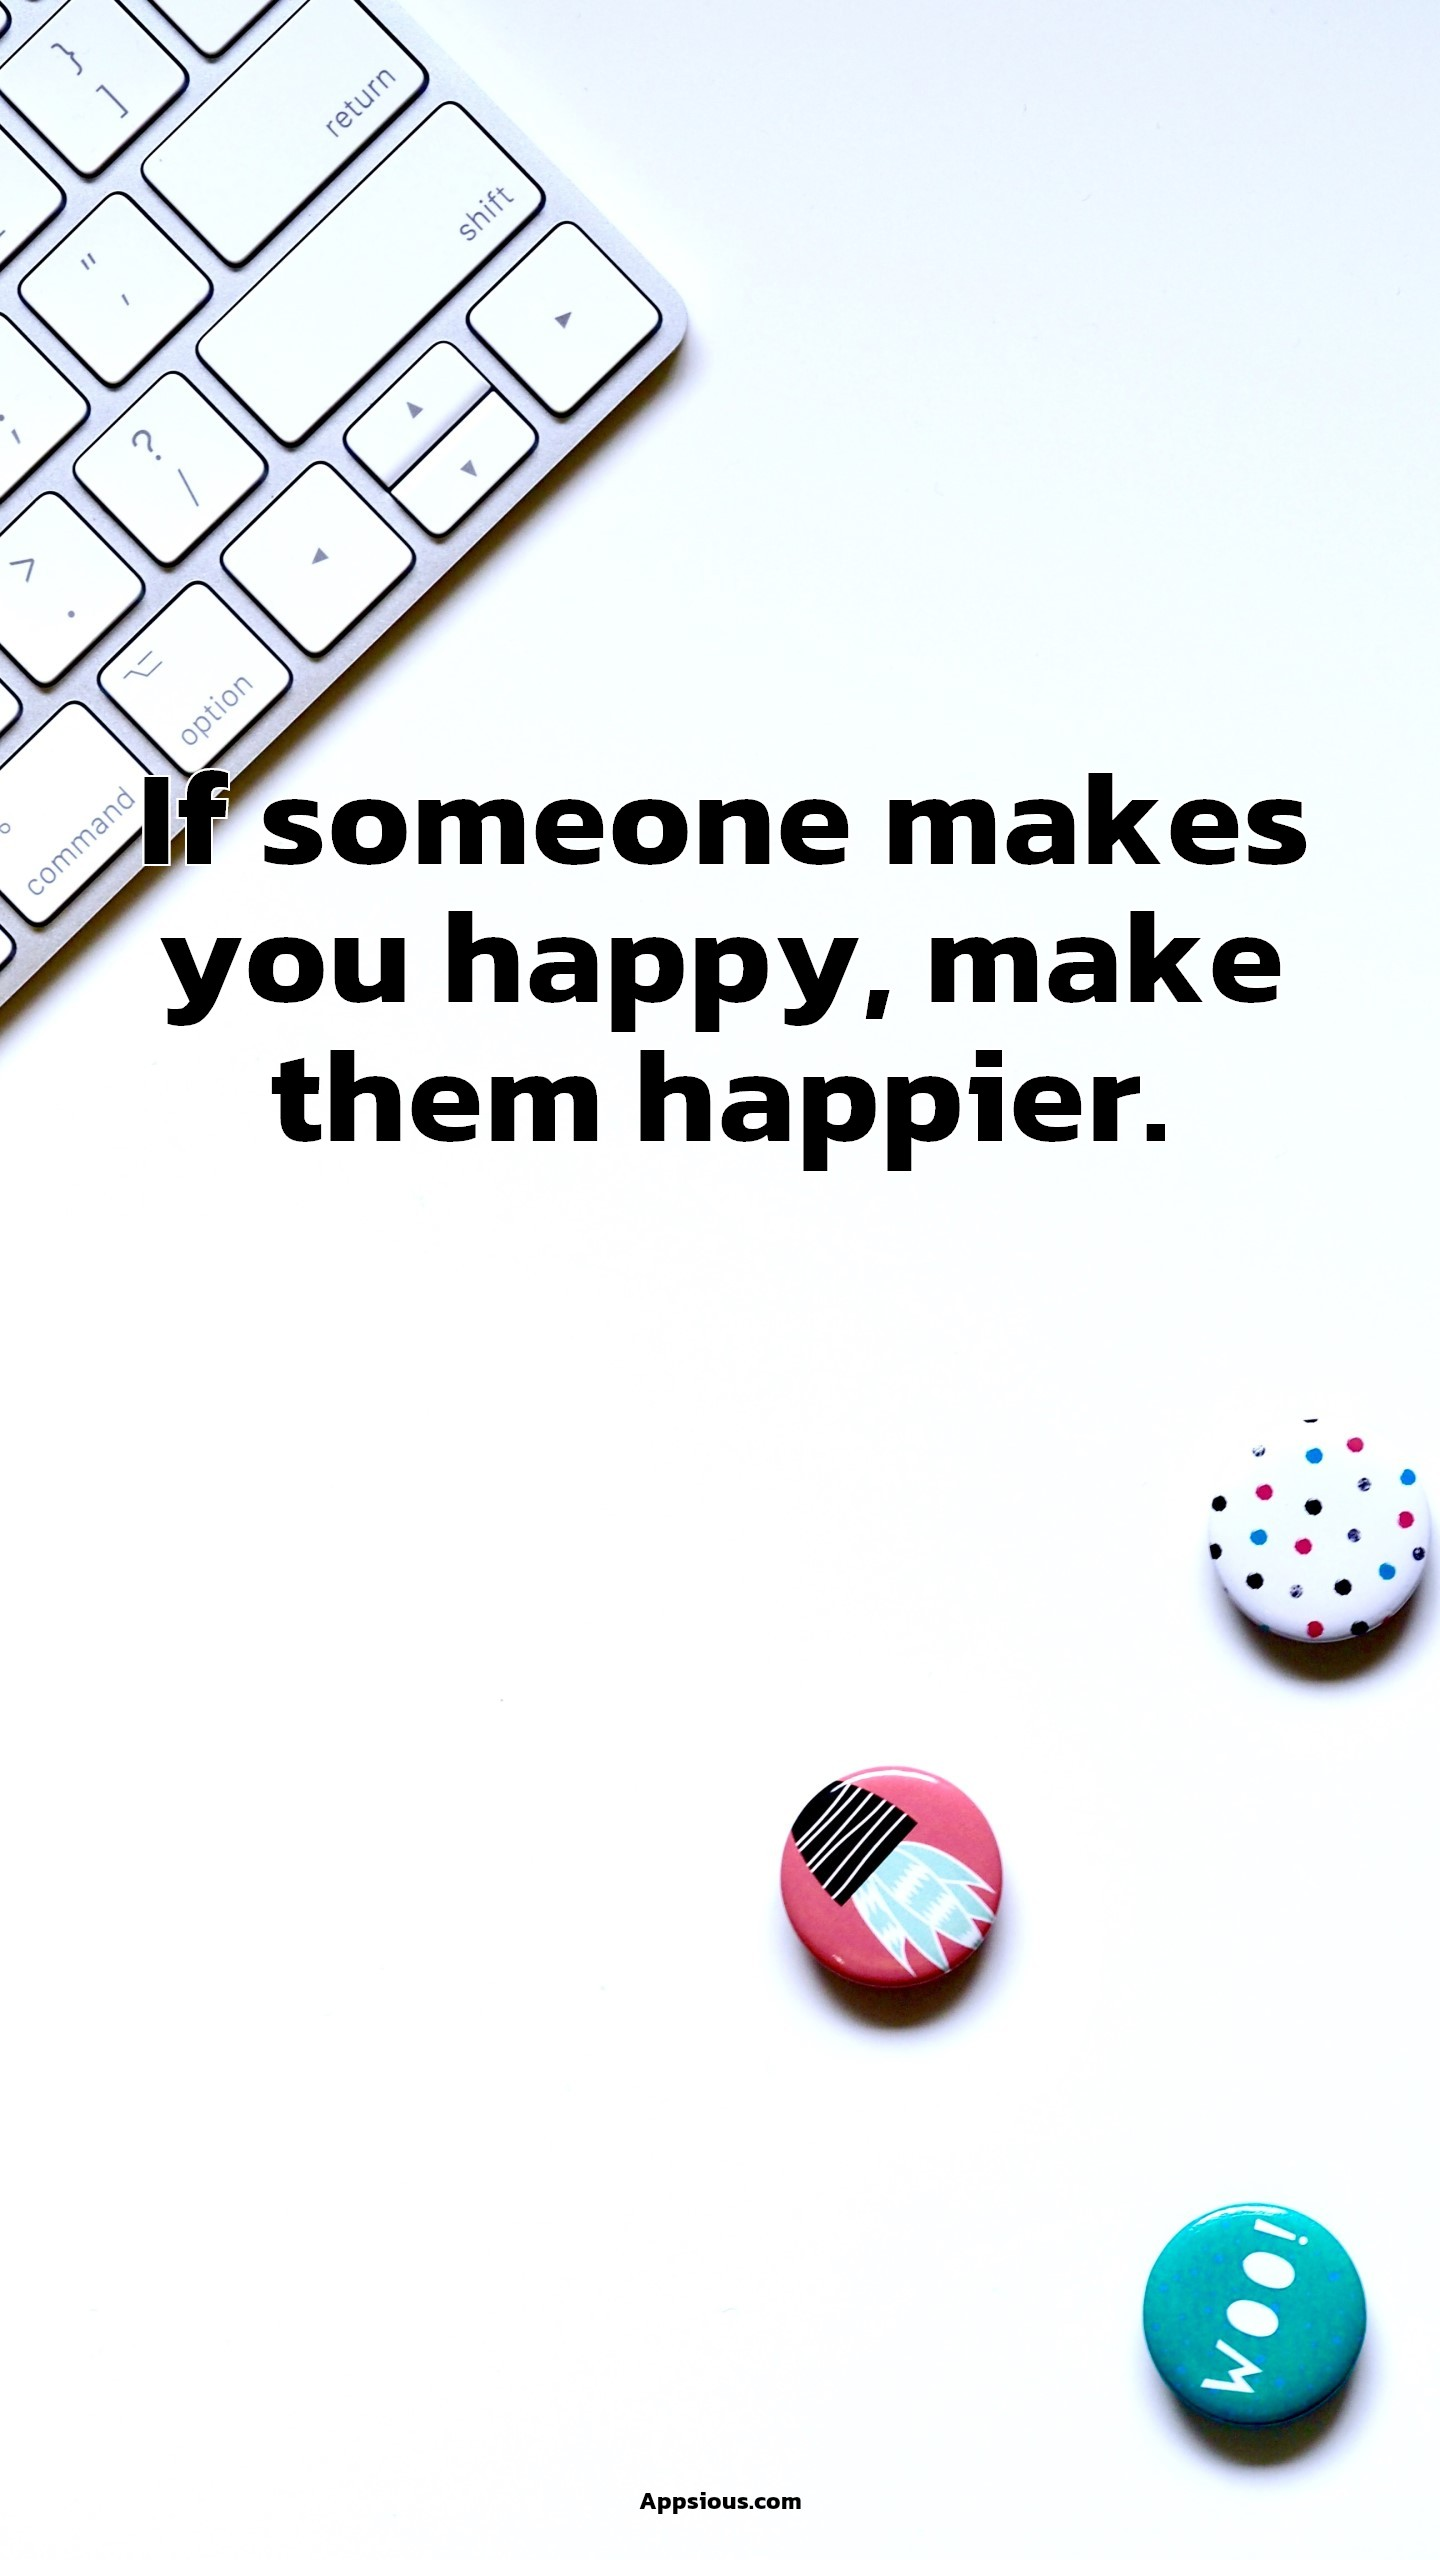 If someone makes you happy, make them happier.